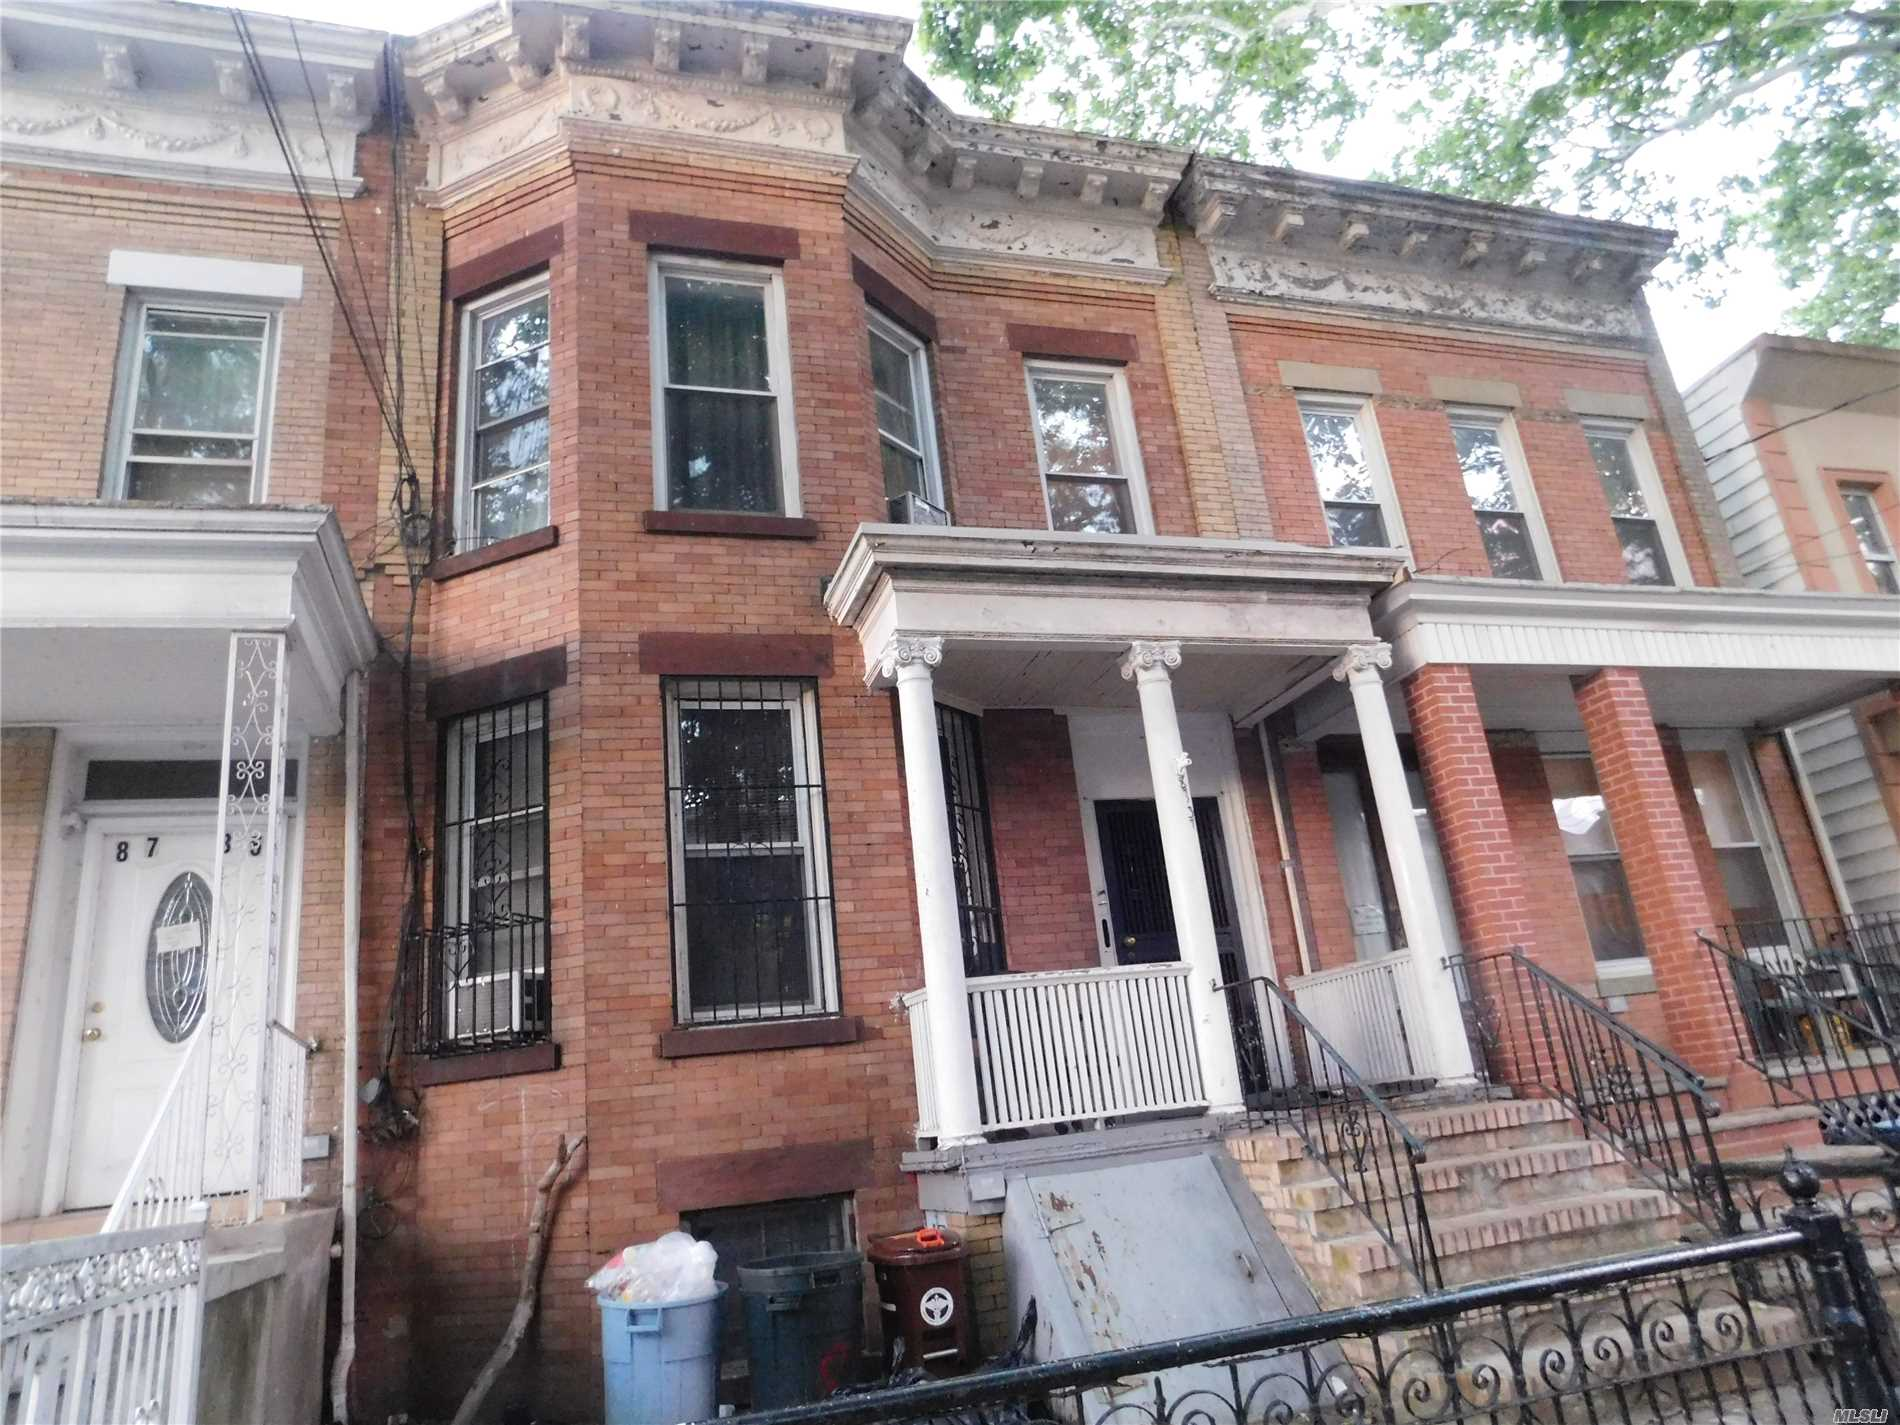 Beautiful 2 Family Home In The Heart Of Woodhaven. This Home Features 6 Bedrooms, 3 Full Bath. 3 Min Walk To Jamaica Ave J Train, 40 Min To Down Town Manhattan, Close To All, Must See................